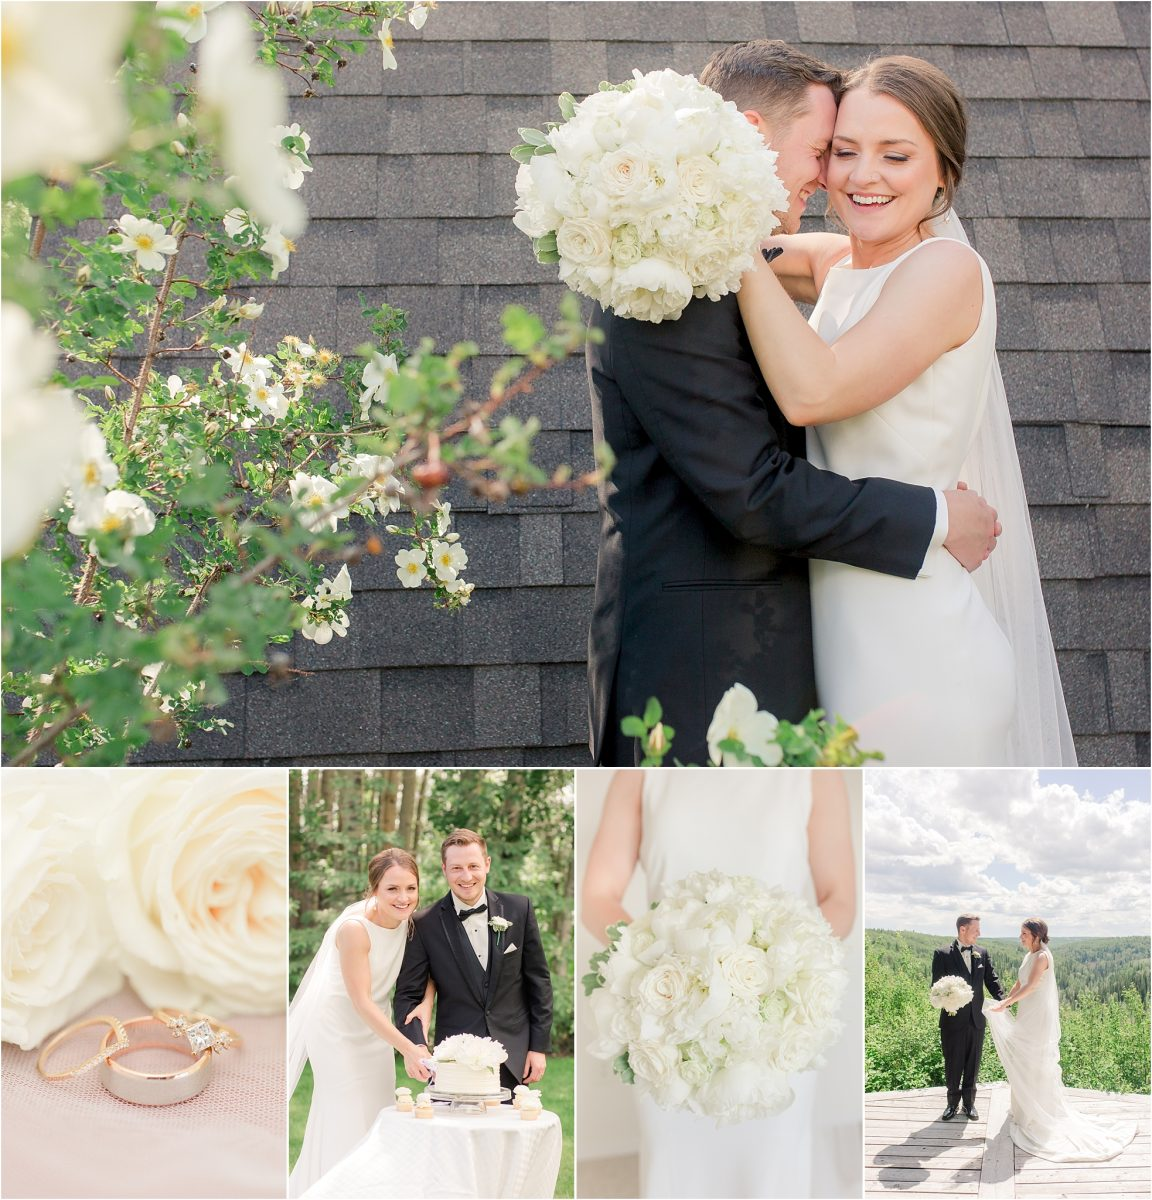 intimate micro wedding at serenity acres in grande prairie at gorgeous outdoor venue with lookout view shailenes and brodies wedding day